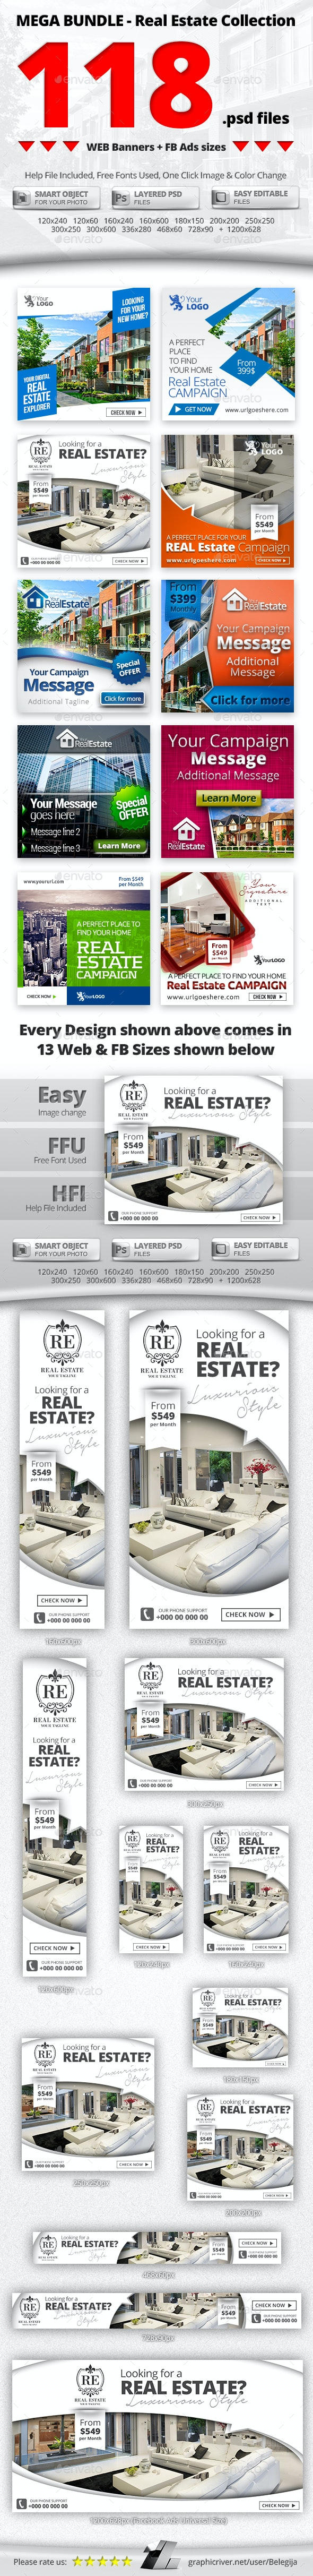 10 in 1 Real Estate Web & FB Banners - Mega Bundle 1 - Banners & Ads Web Elements